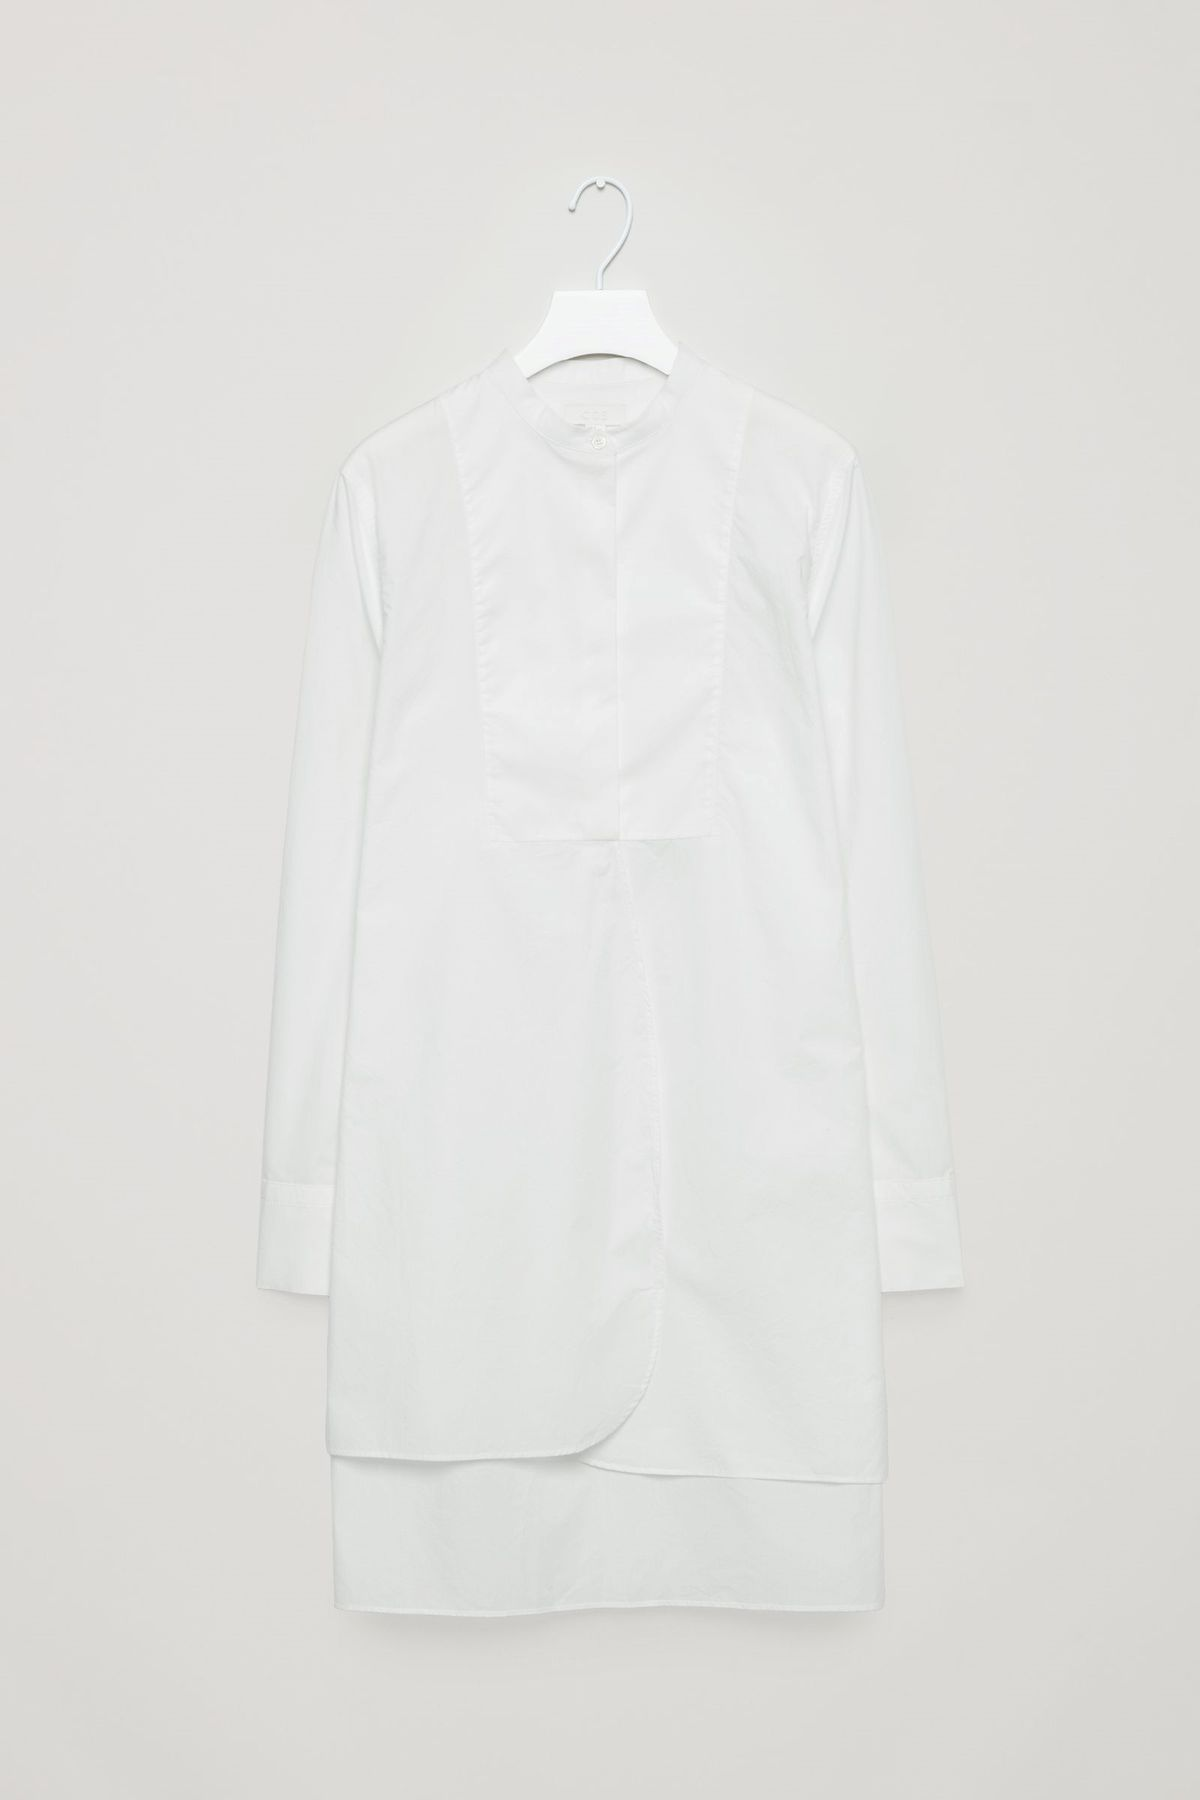 A tunic-length white shirt with a bib front.